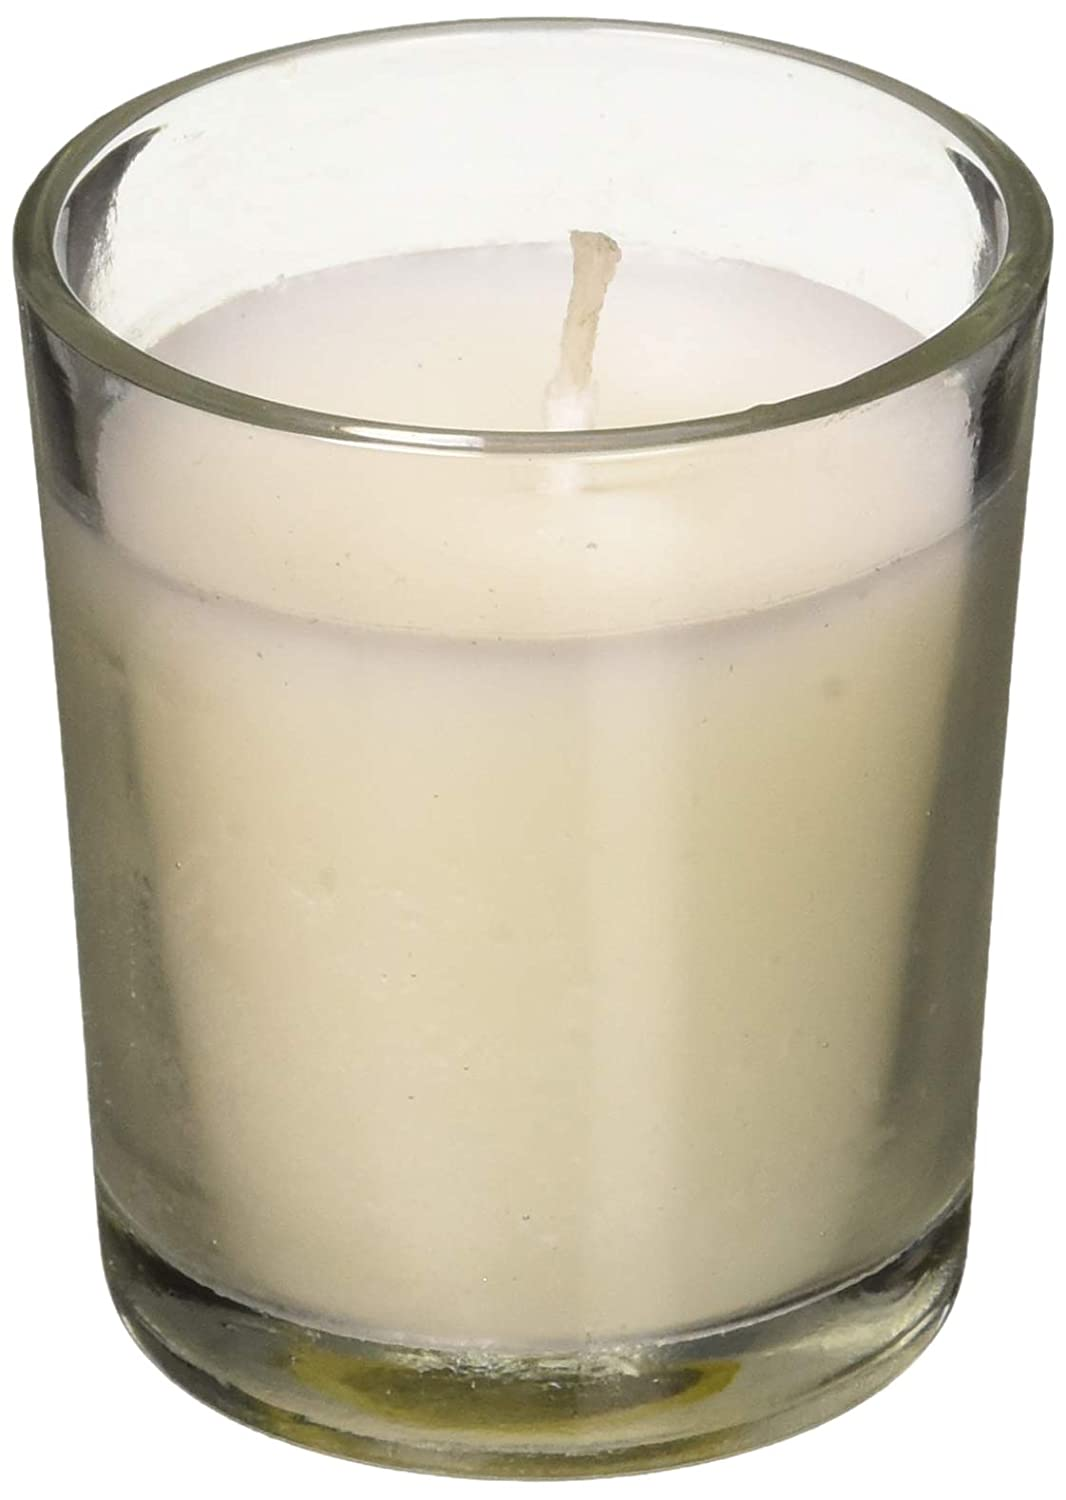 Hosley's Set of 12 Unscented Clear Glass Wax Filled Votive Candles - 12 Hour Burn Time. Glass Votive & Hand Poured Candle Included, Ideal for Aromatherapy, Weddings, Party Favors. O1 HG Global FBA_FBAC-H20603ON-1-EA